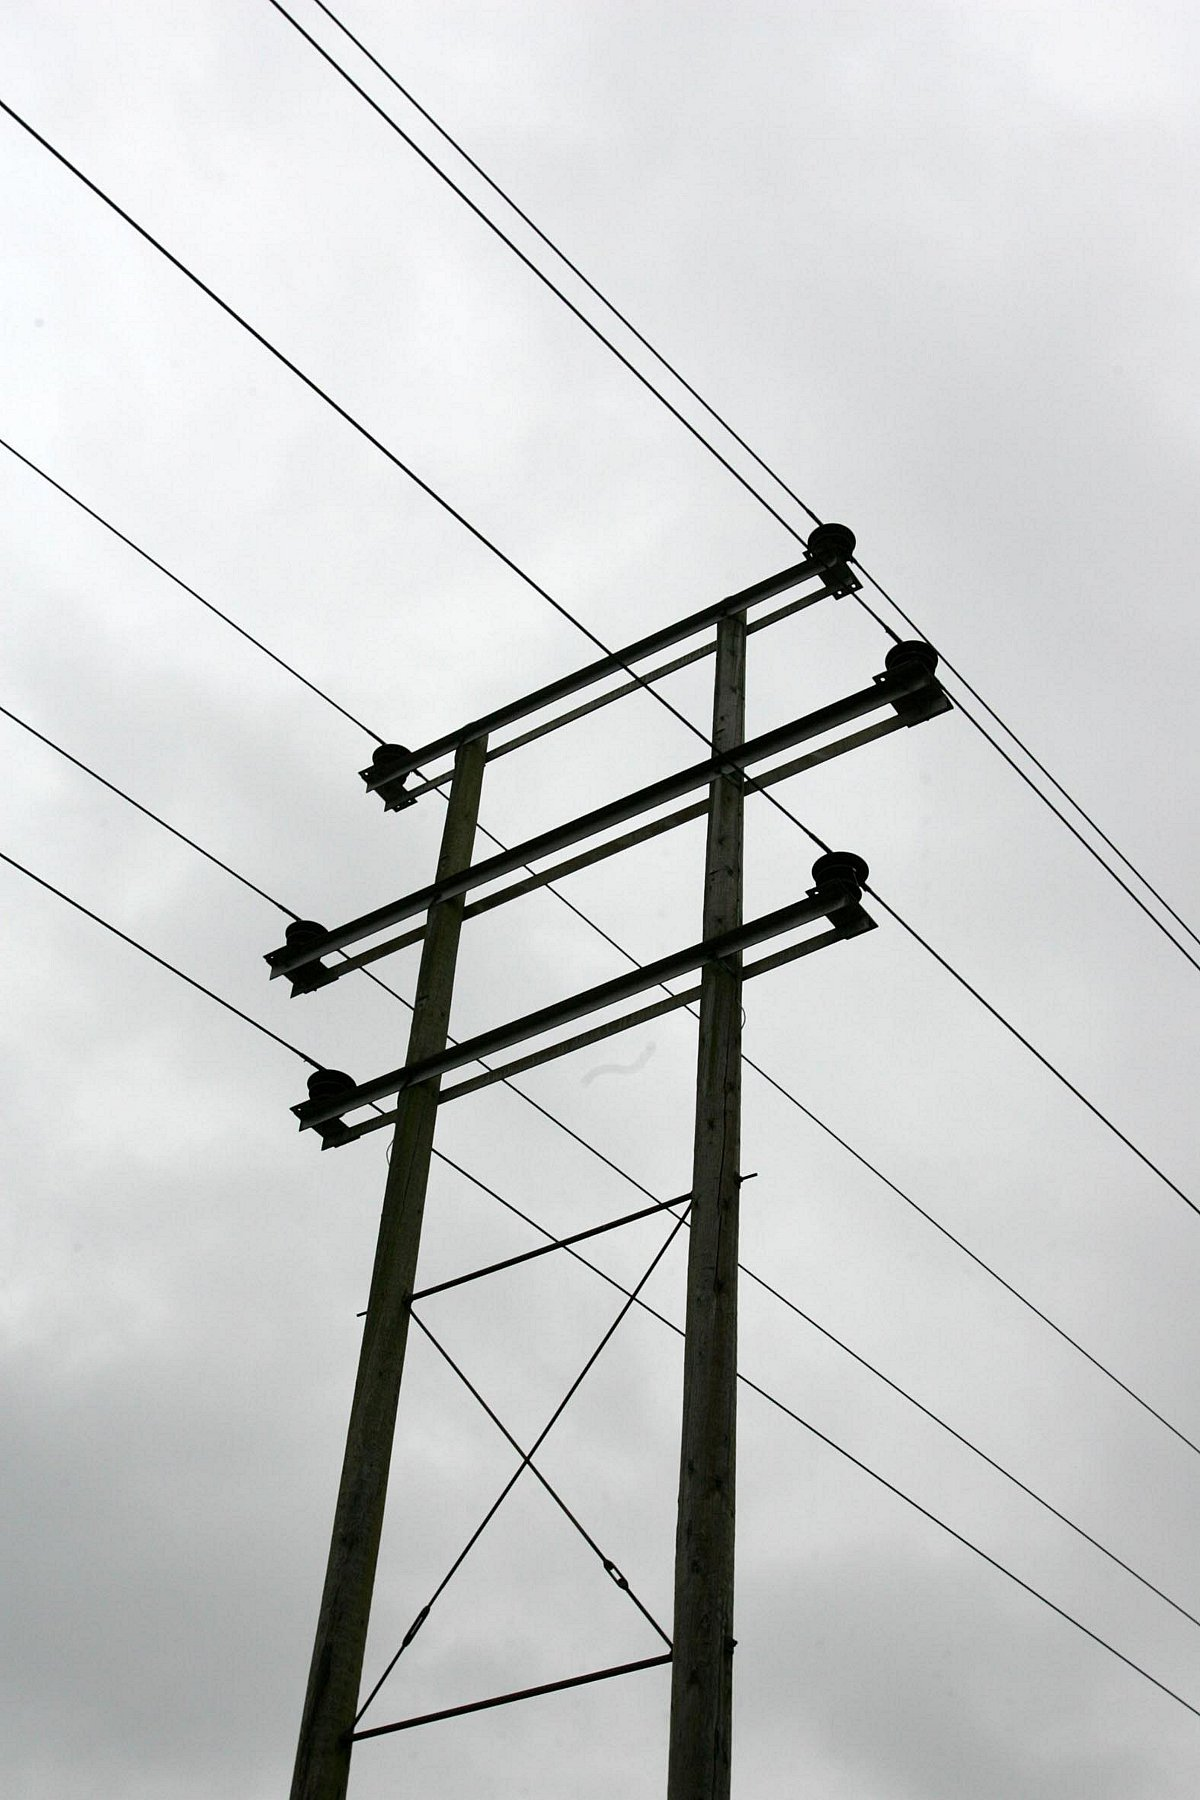 Fault leaves homes without power